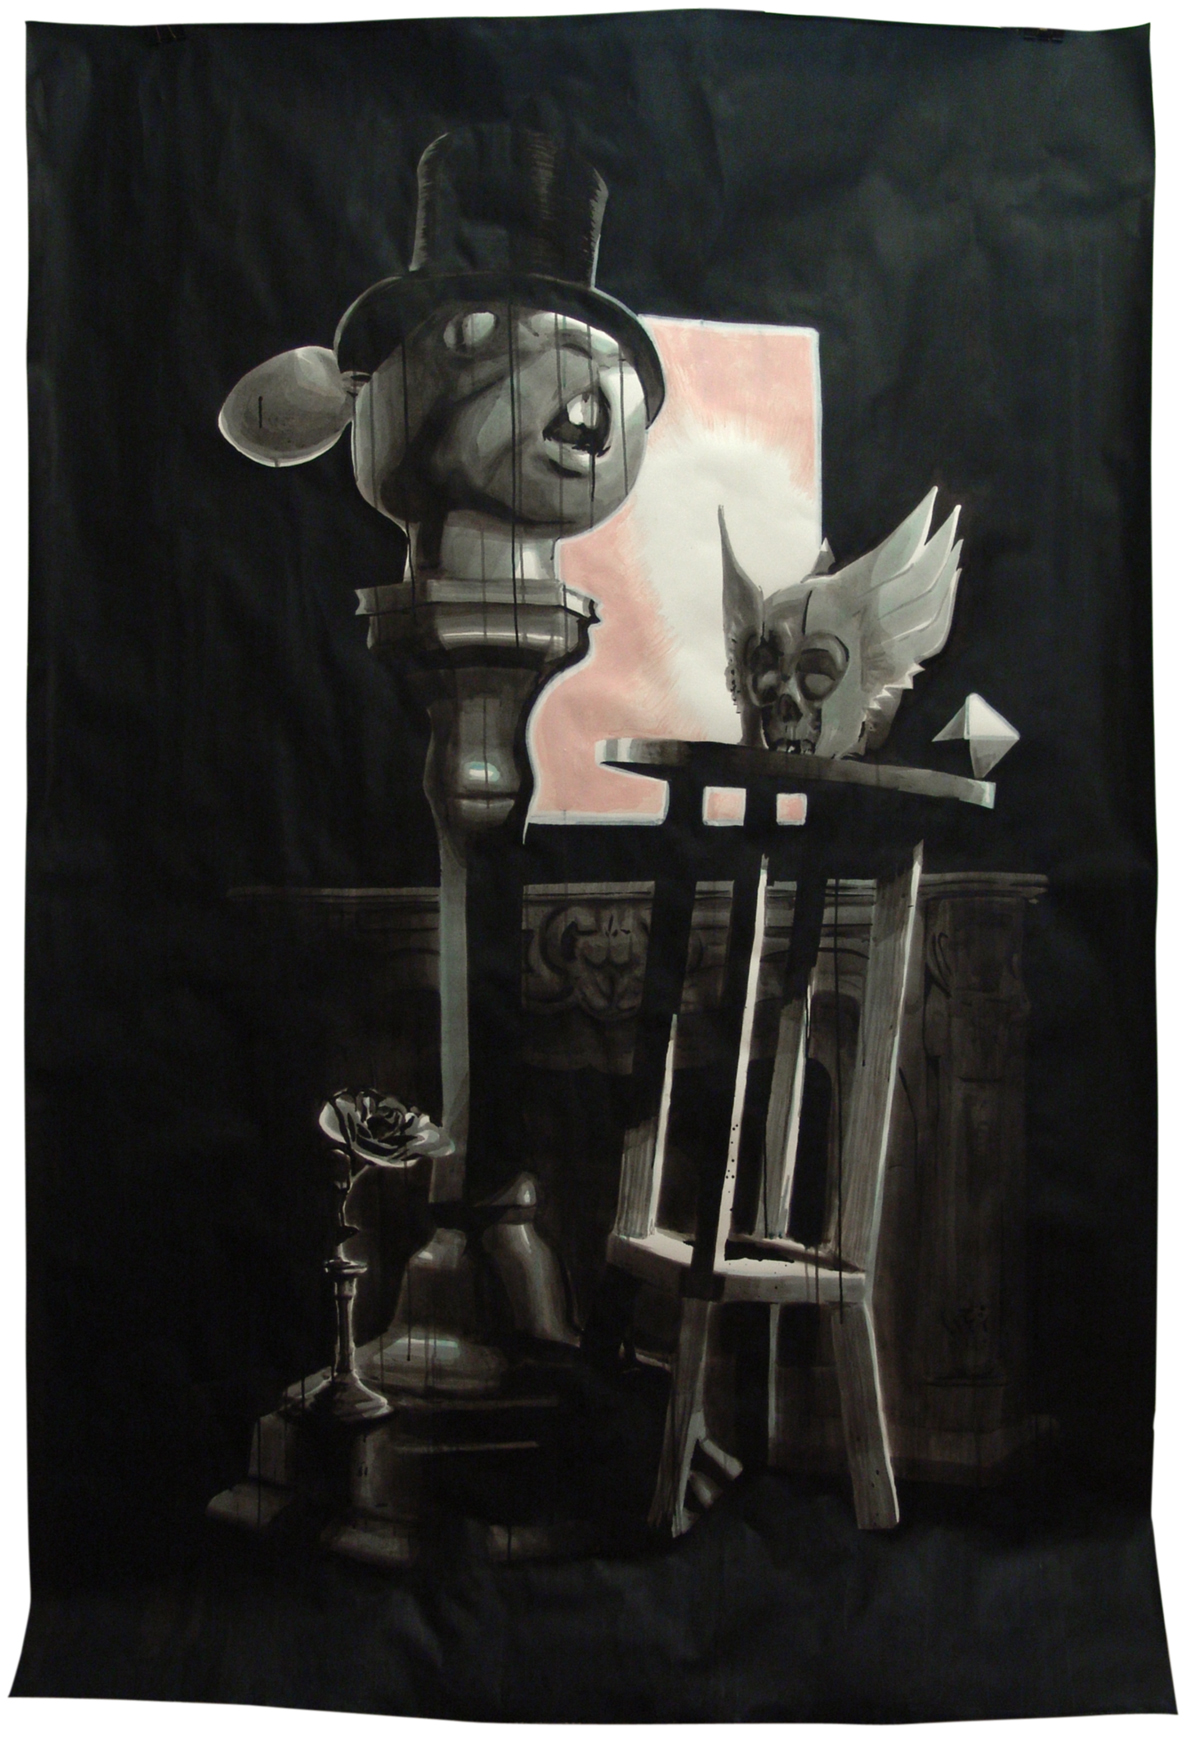 UNTITLED [still life], Indian ink & acrylic paint on paper, 2.27m x 1.50m, 2010